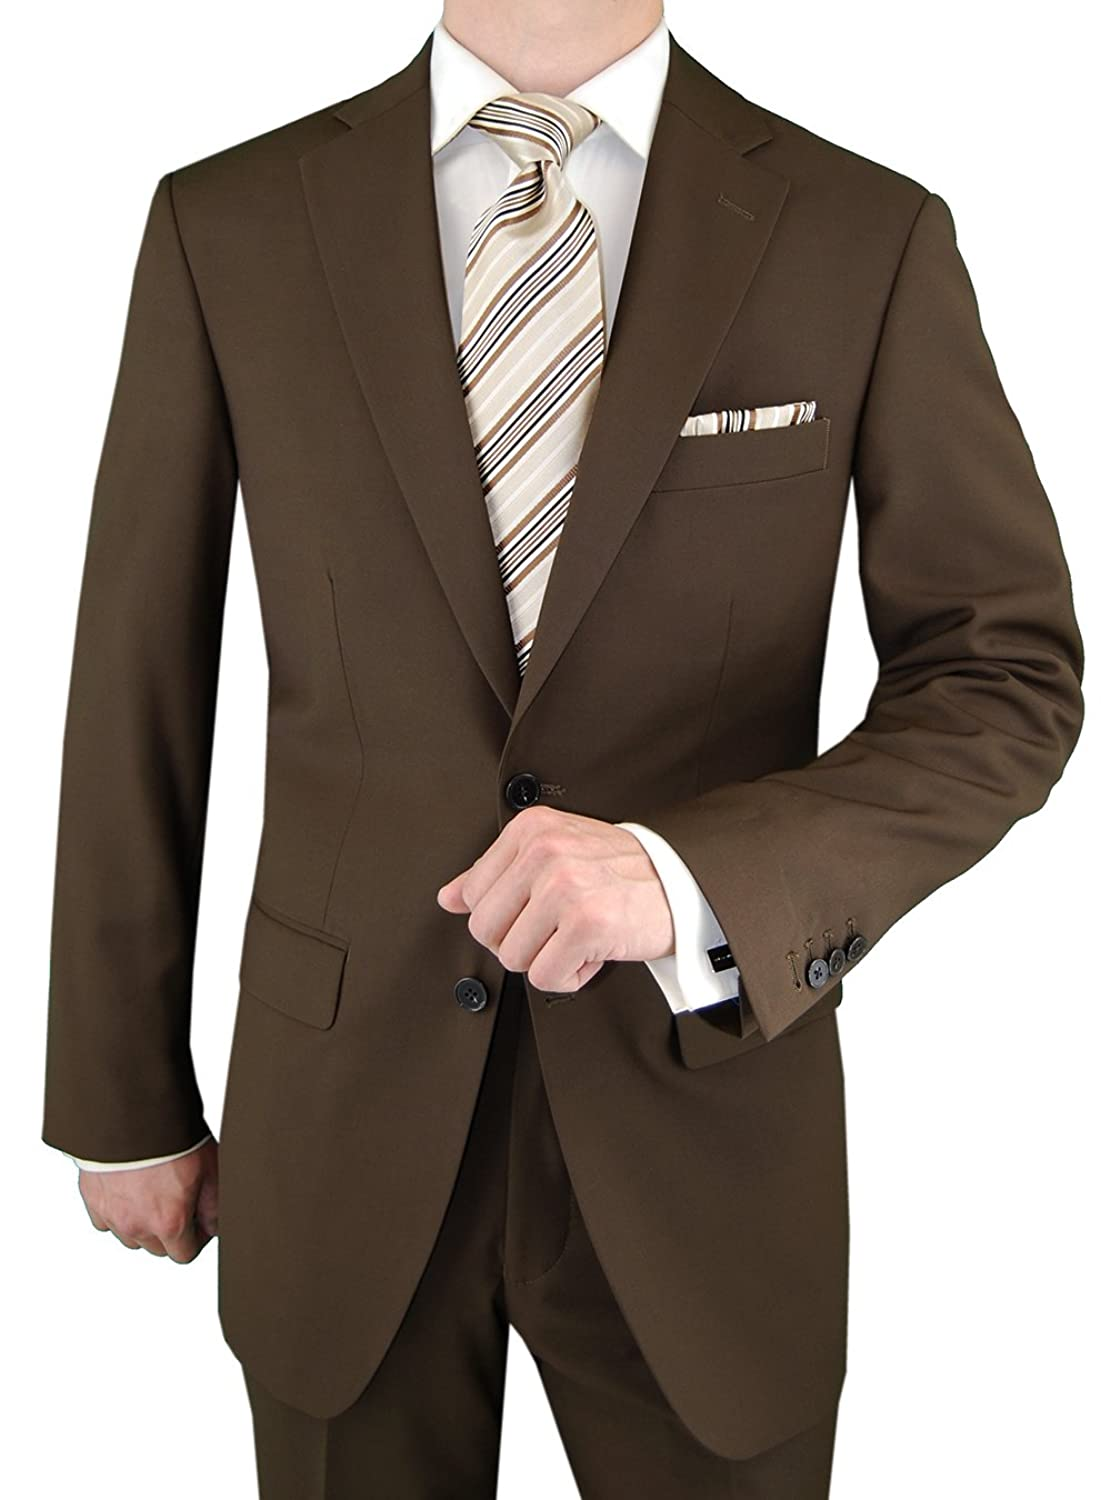 Gino Valentino Men's 2 Button Side Vents Jacket Modern Suit